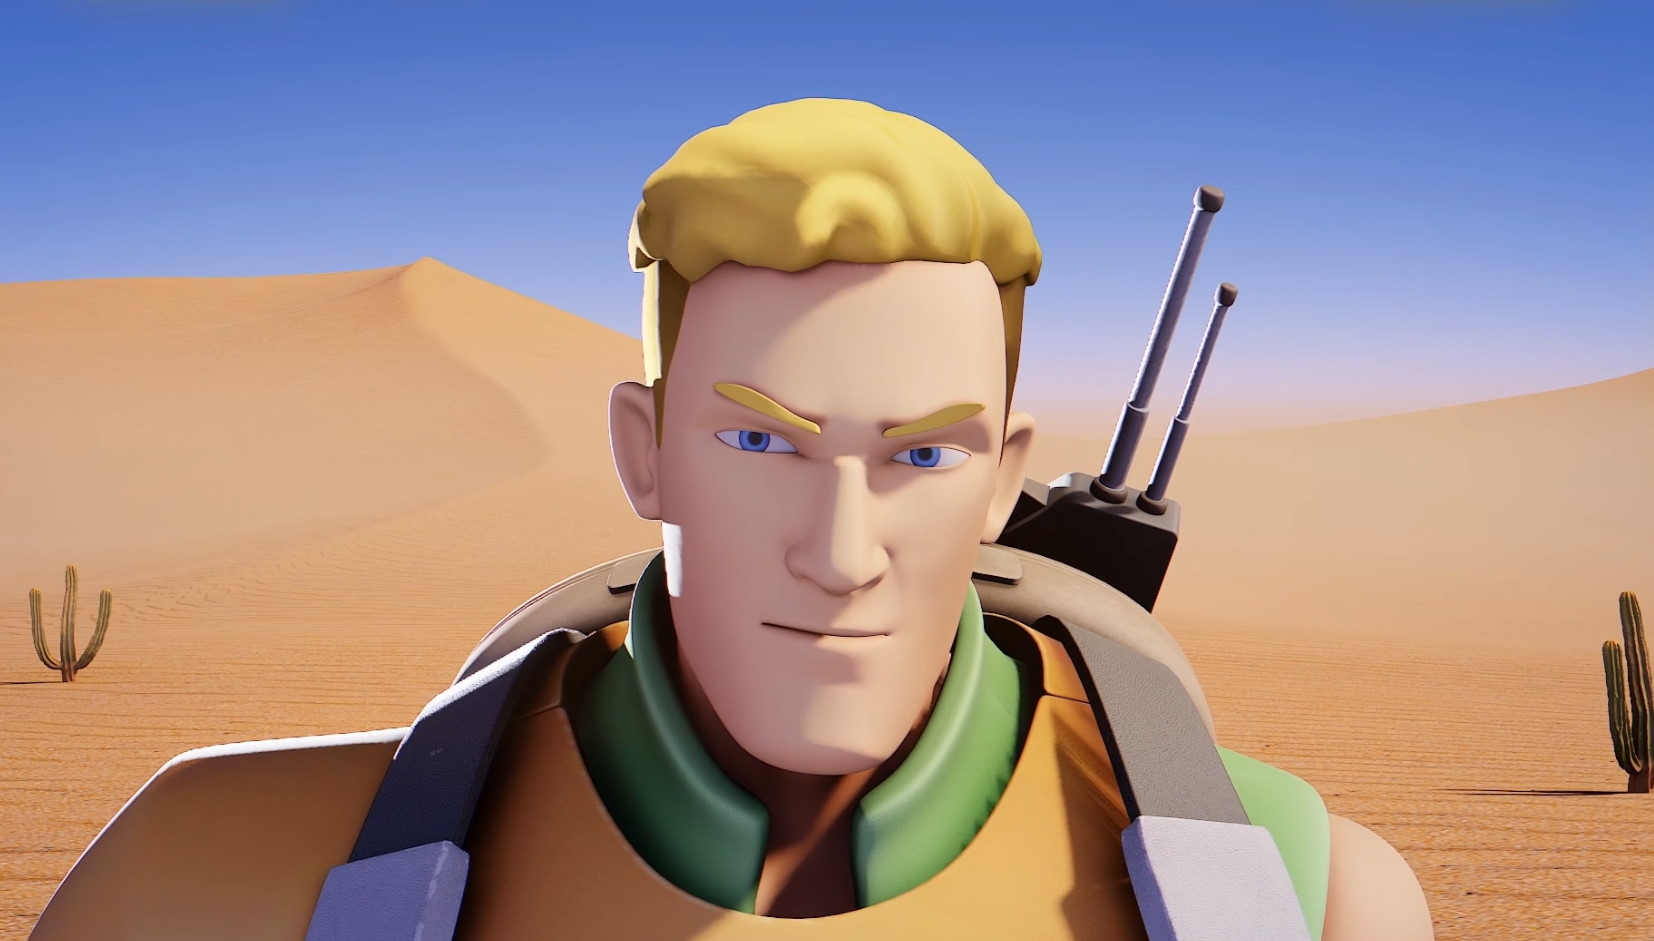 Fortnite streamer Tfue is launching his own series of NFT cards, because of course he is